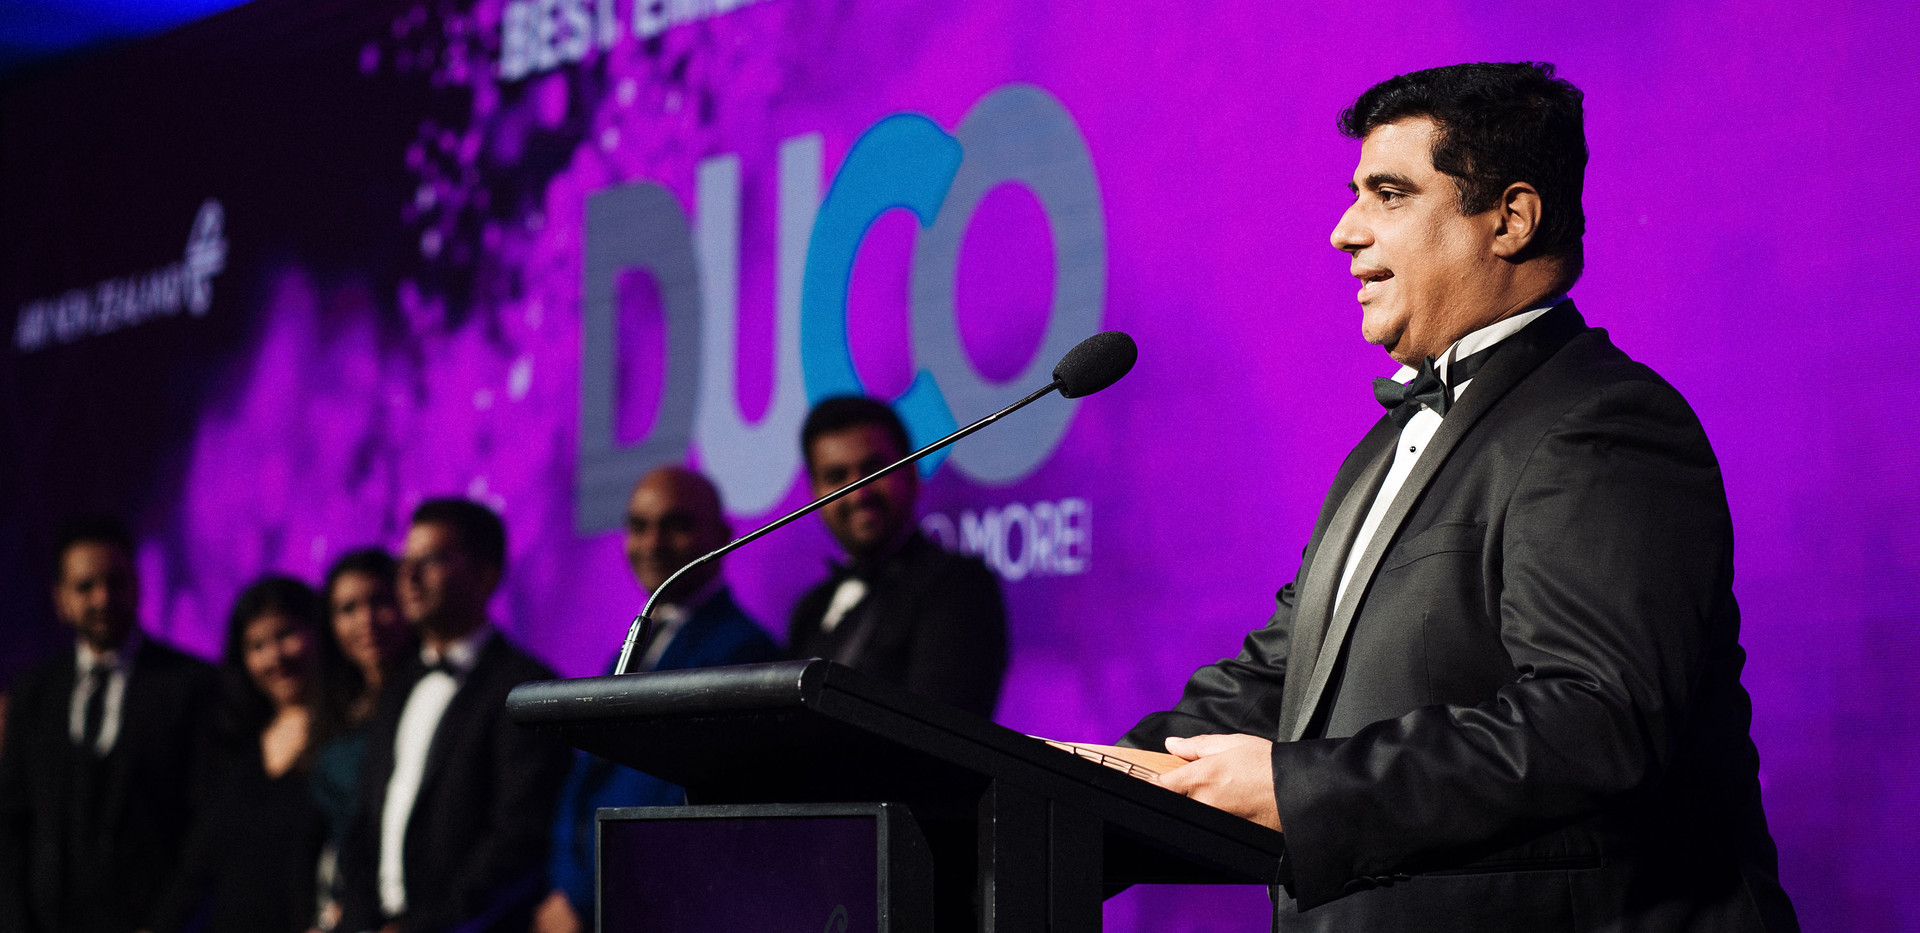 Chandan Ohri's speech at the westpac awards 2020